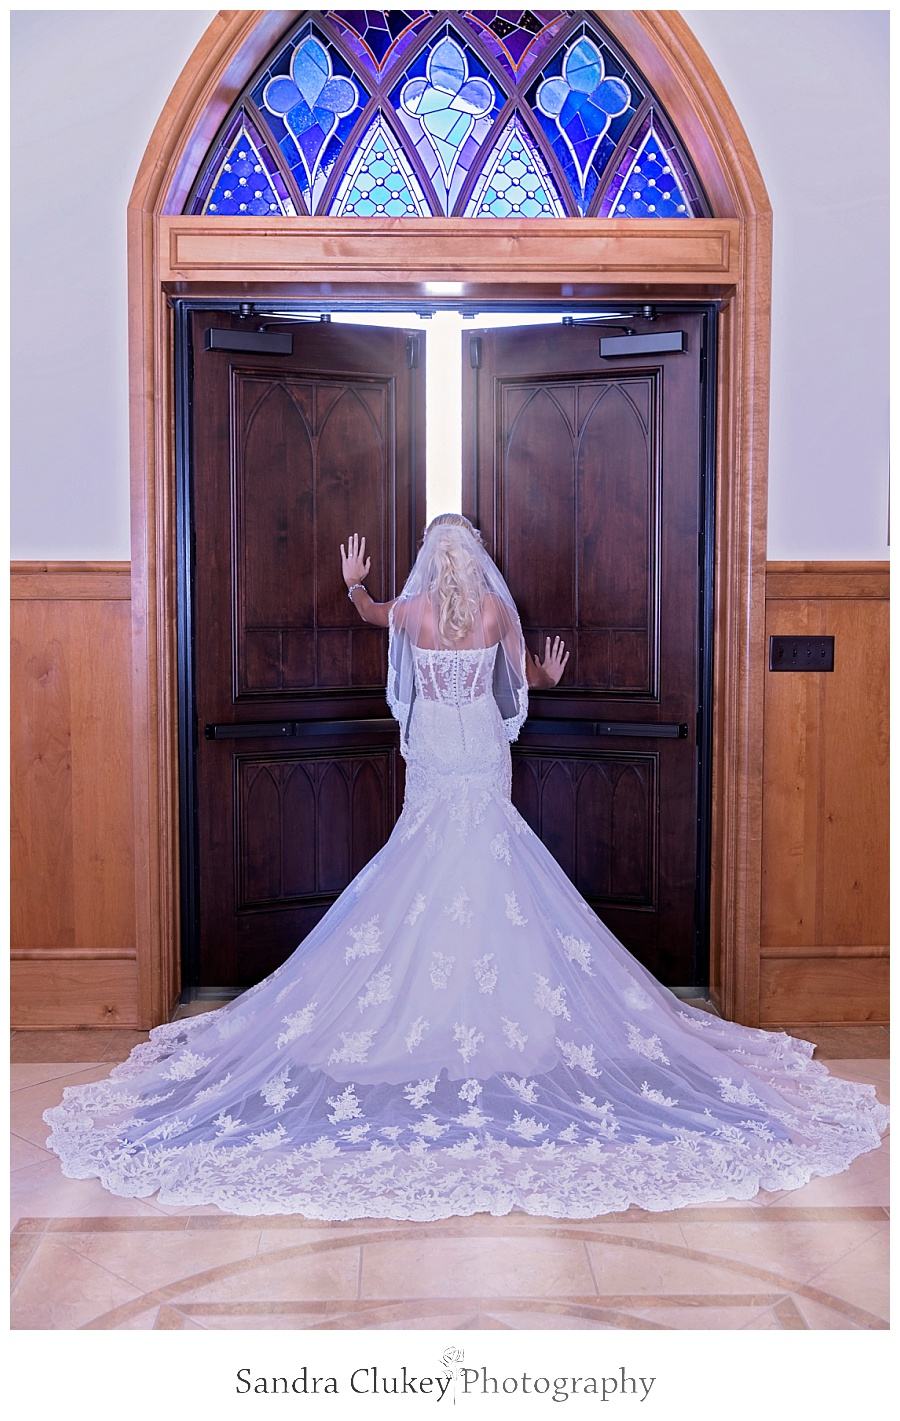 Bride at open church doors